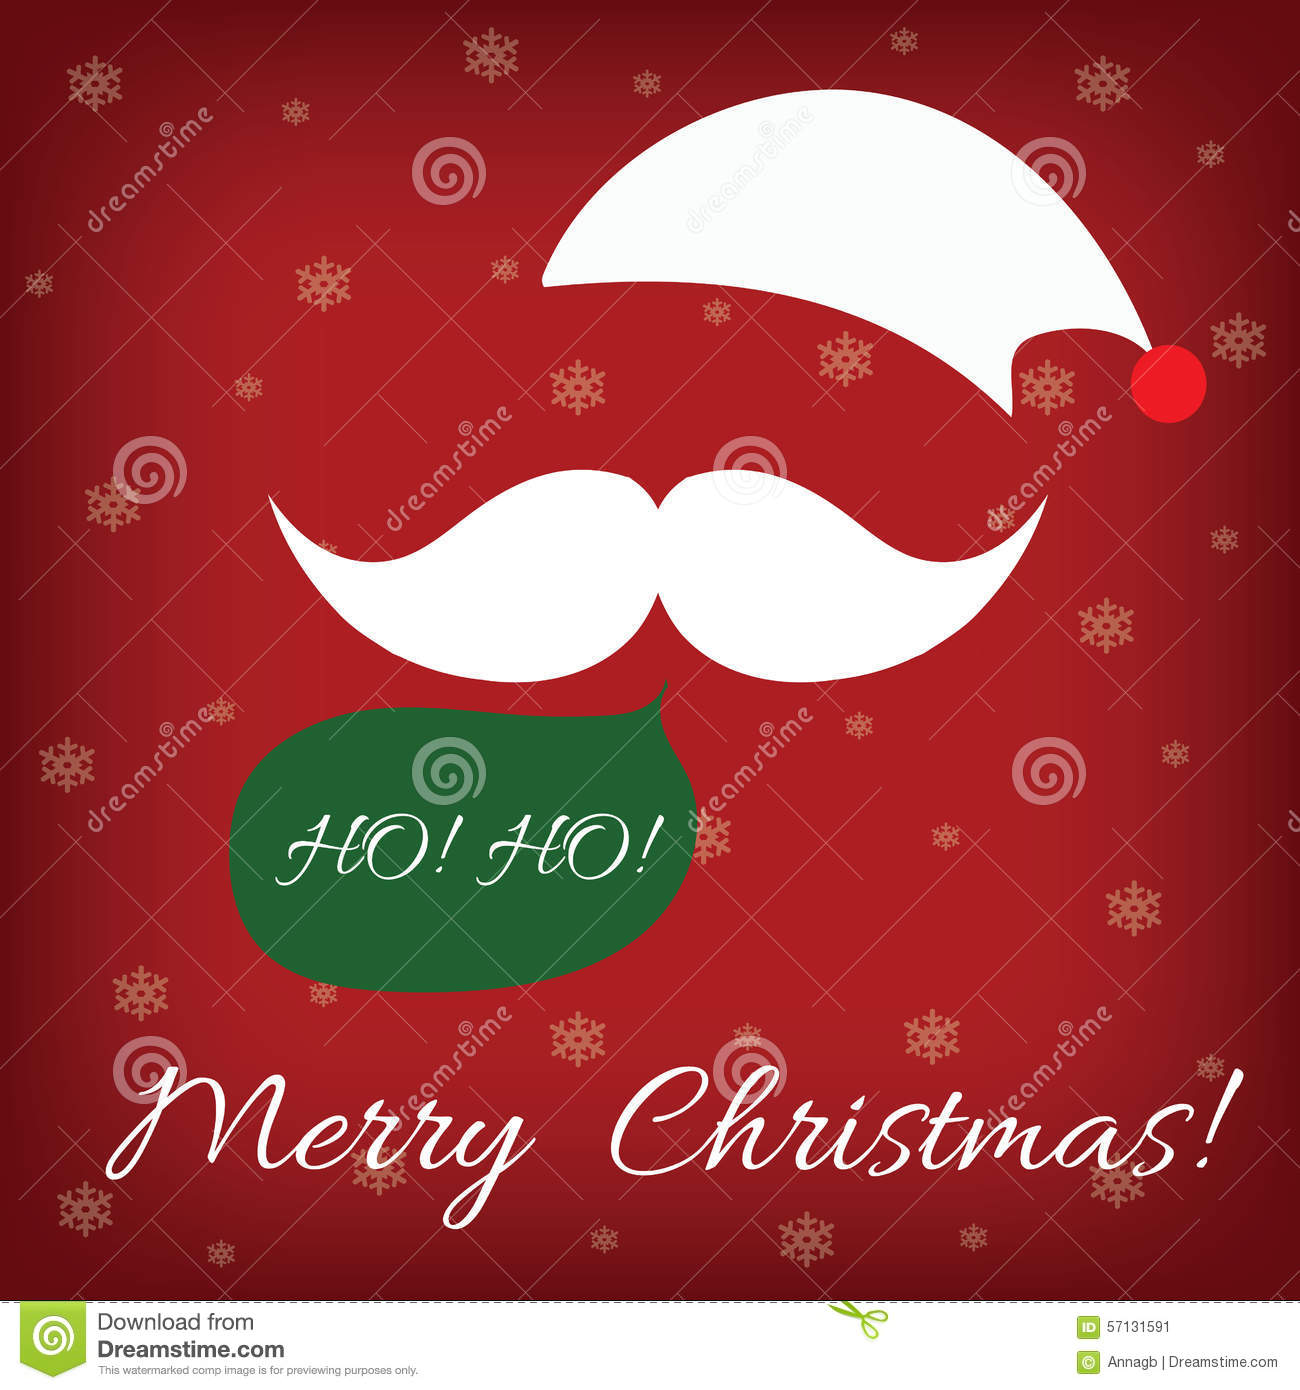 Santa Claus And Speech Bubble With Word HoHo And Merry